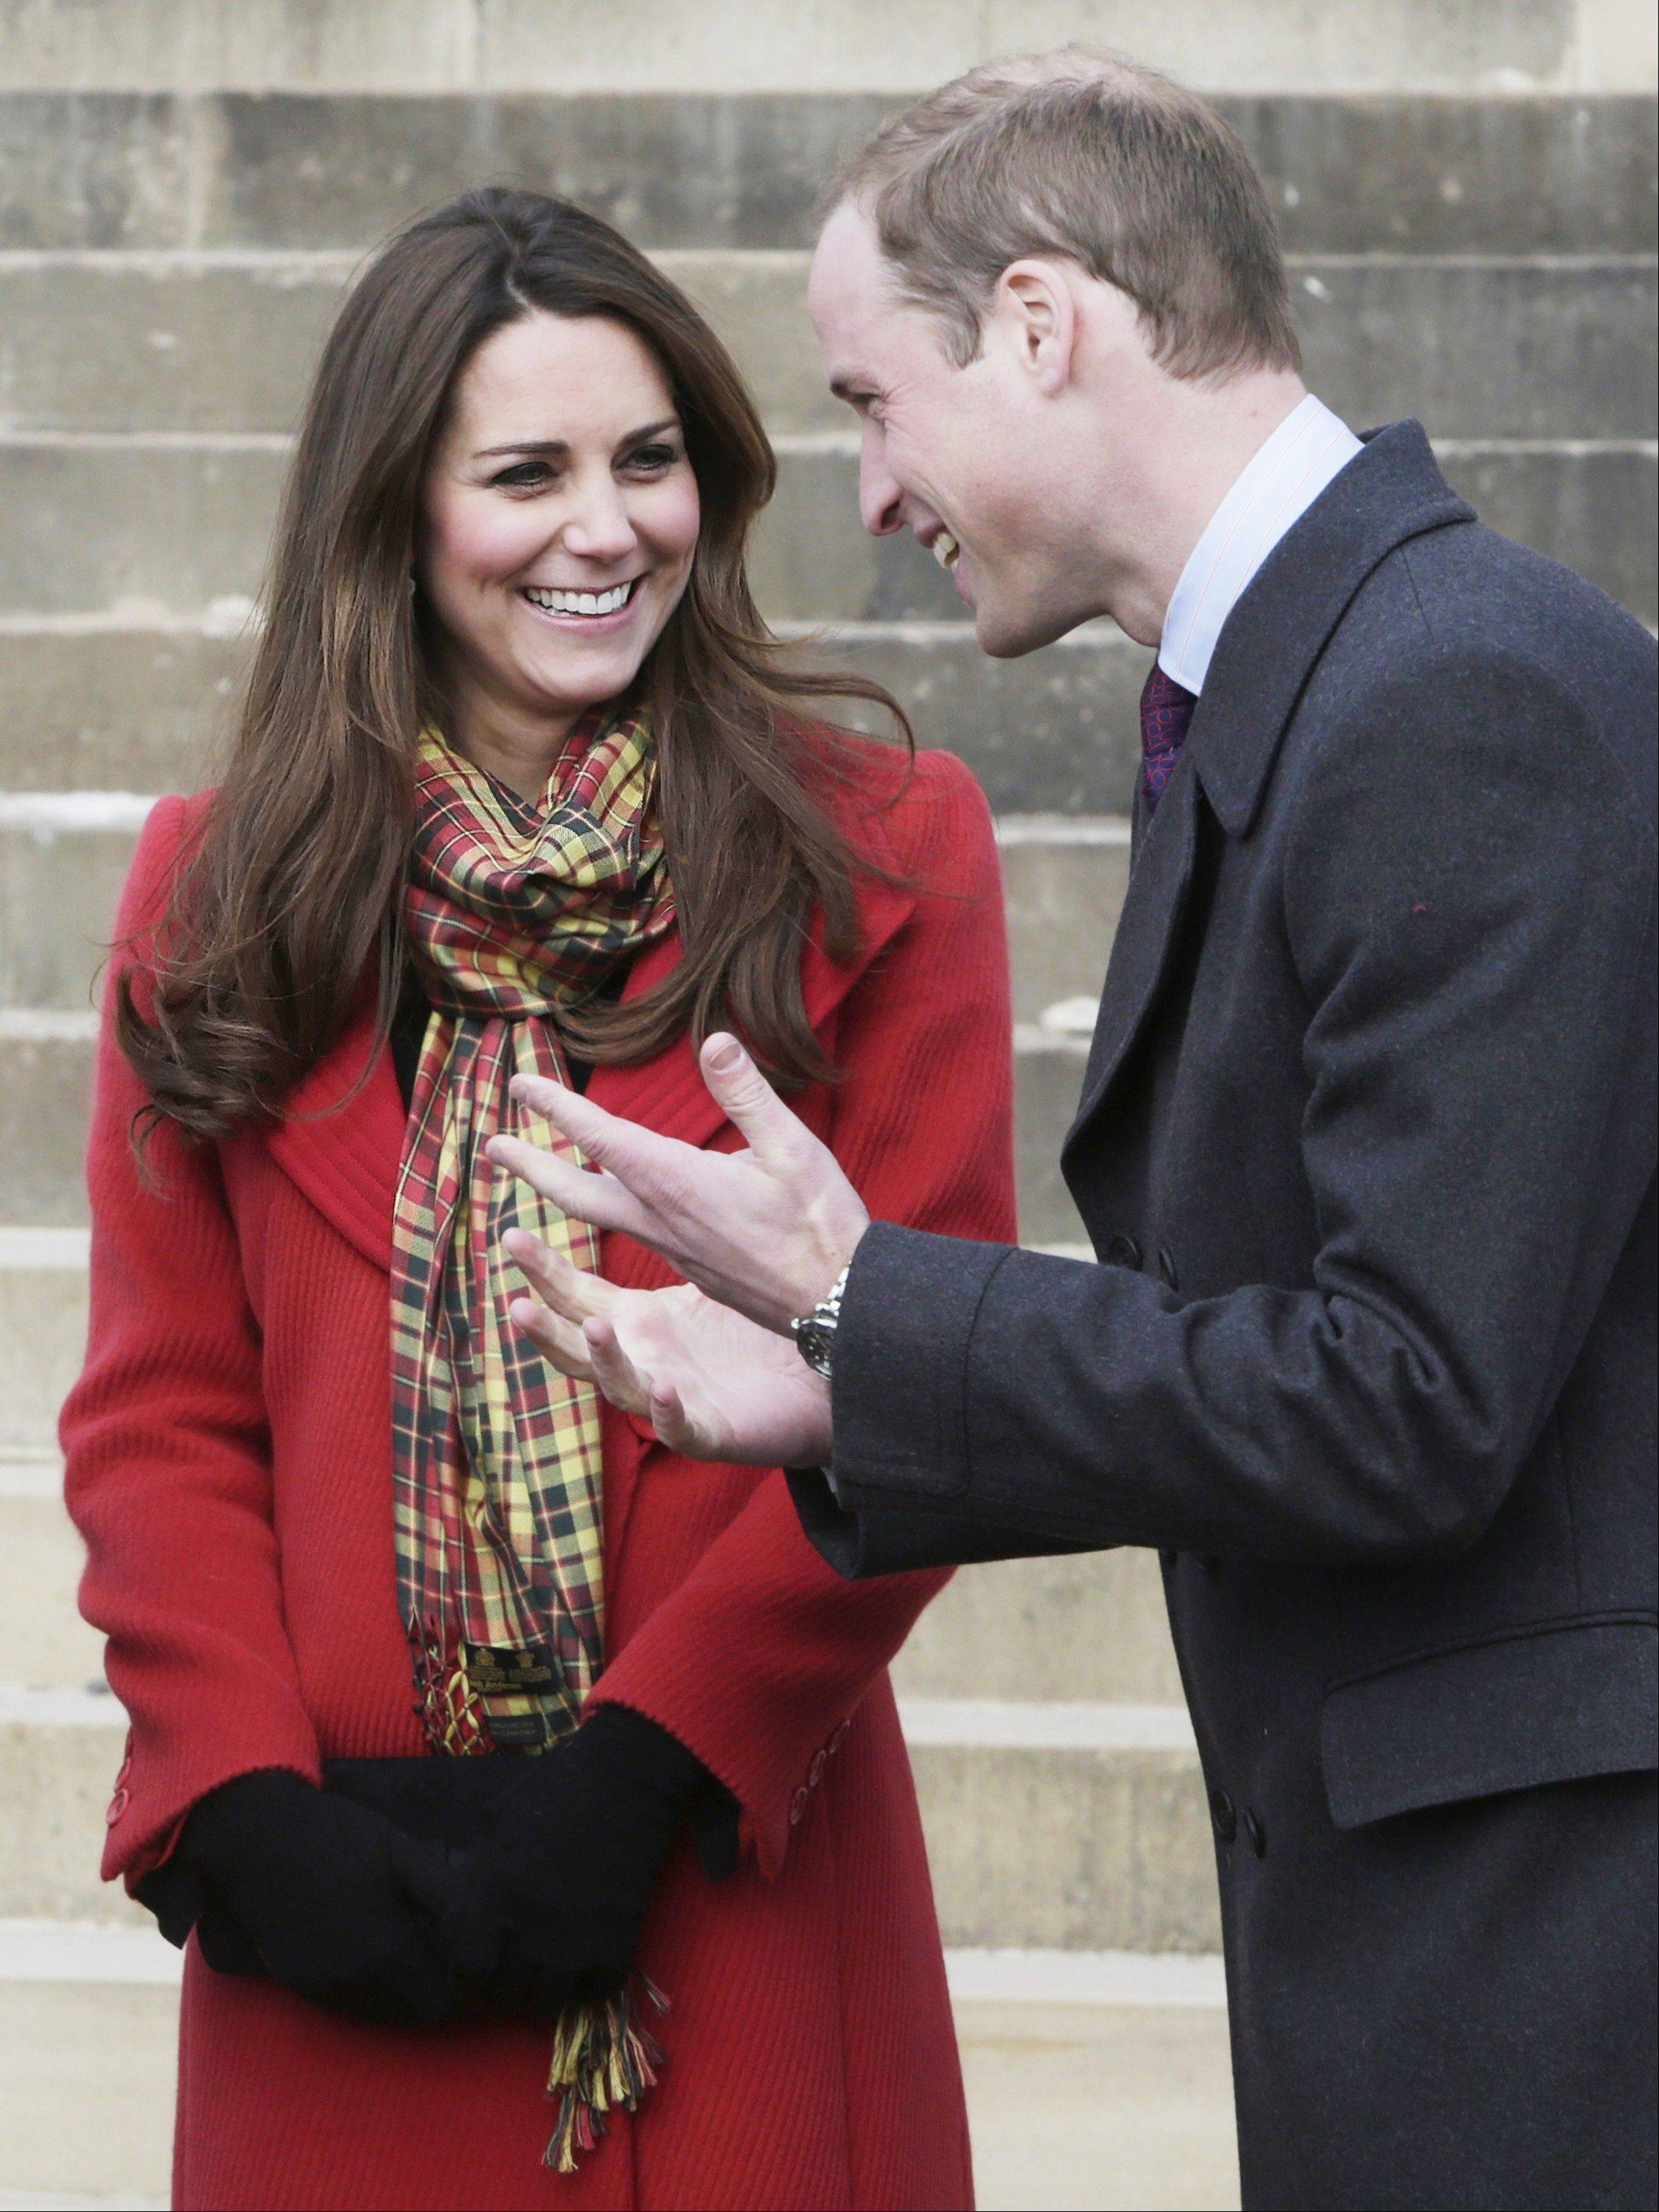 This is a Friday April 5, 2013 file photo Britain's Prince William and Kate Duchess of Cambridge, smile during a visit to Dumfries House in Dumfries, Scotland, to attend the opening of an outdoor centre.